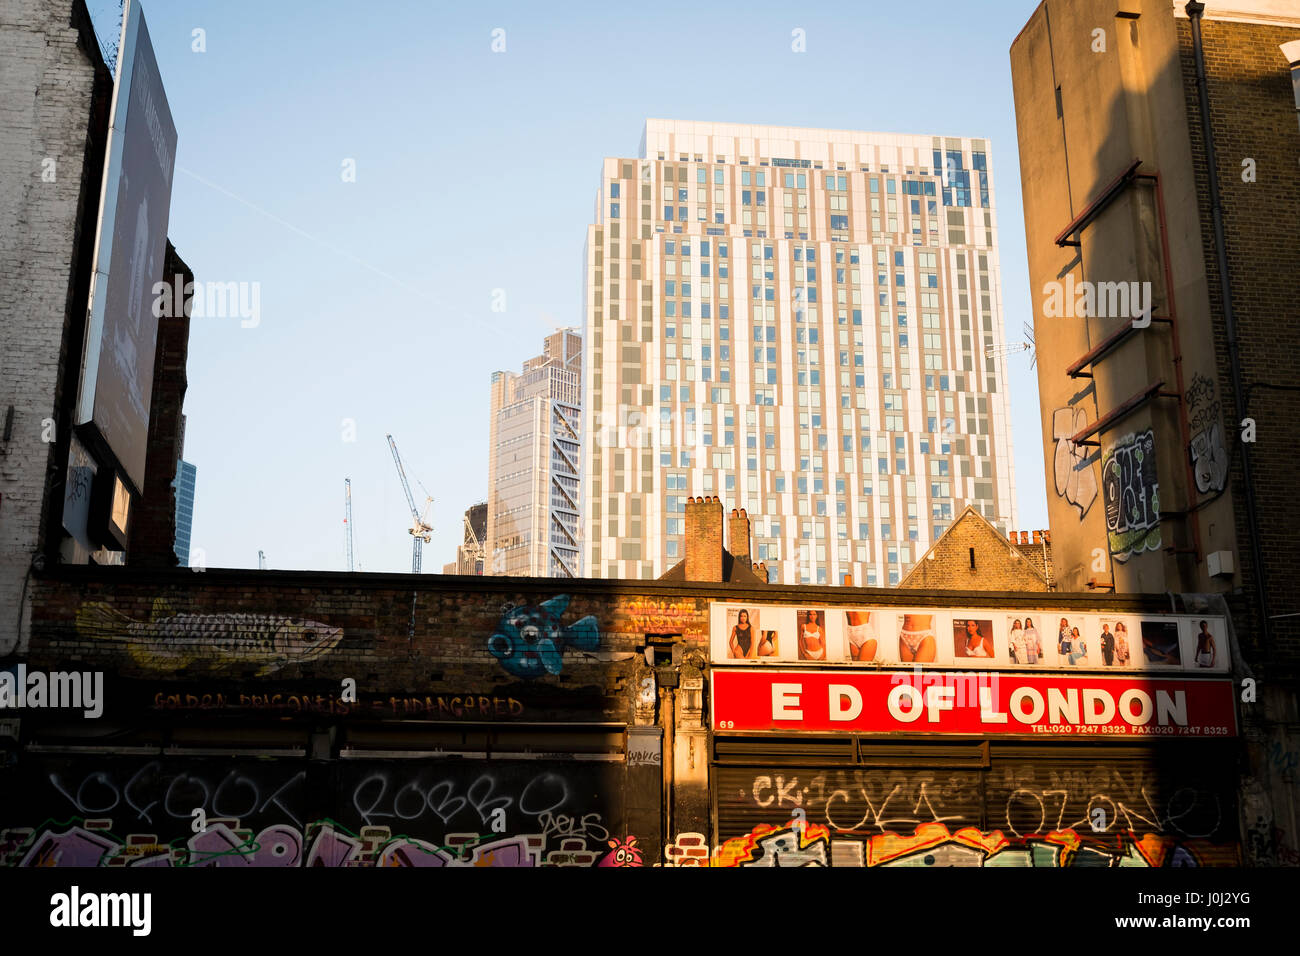 Ed of London, shop in East London Stock Photo